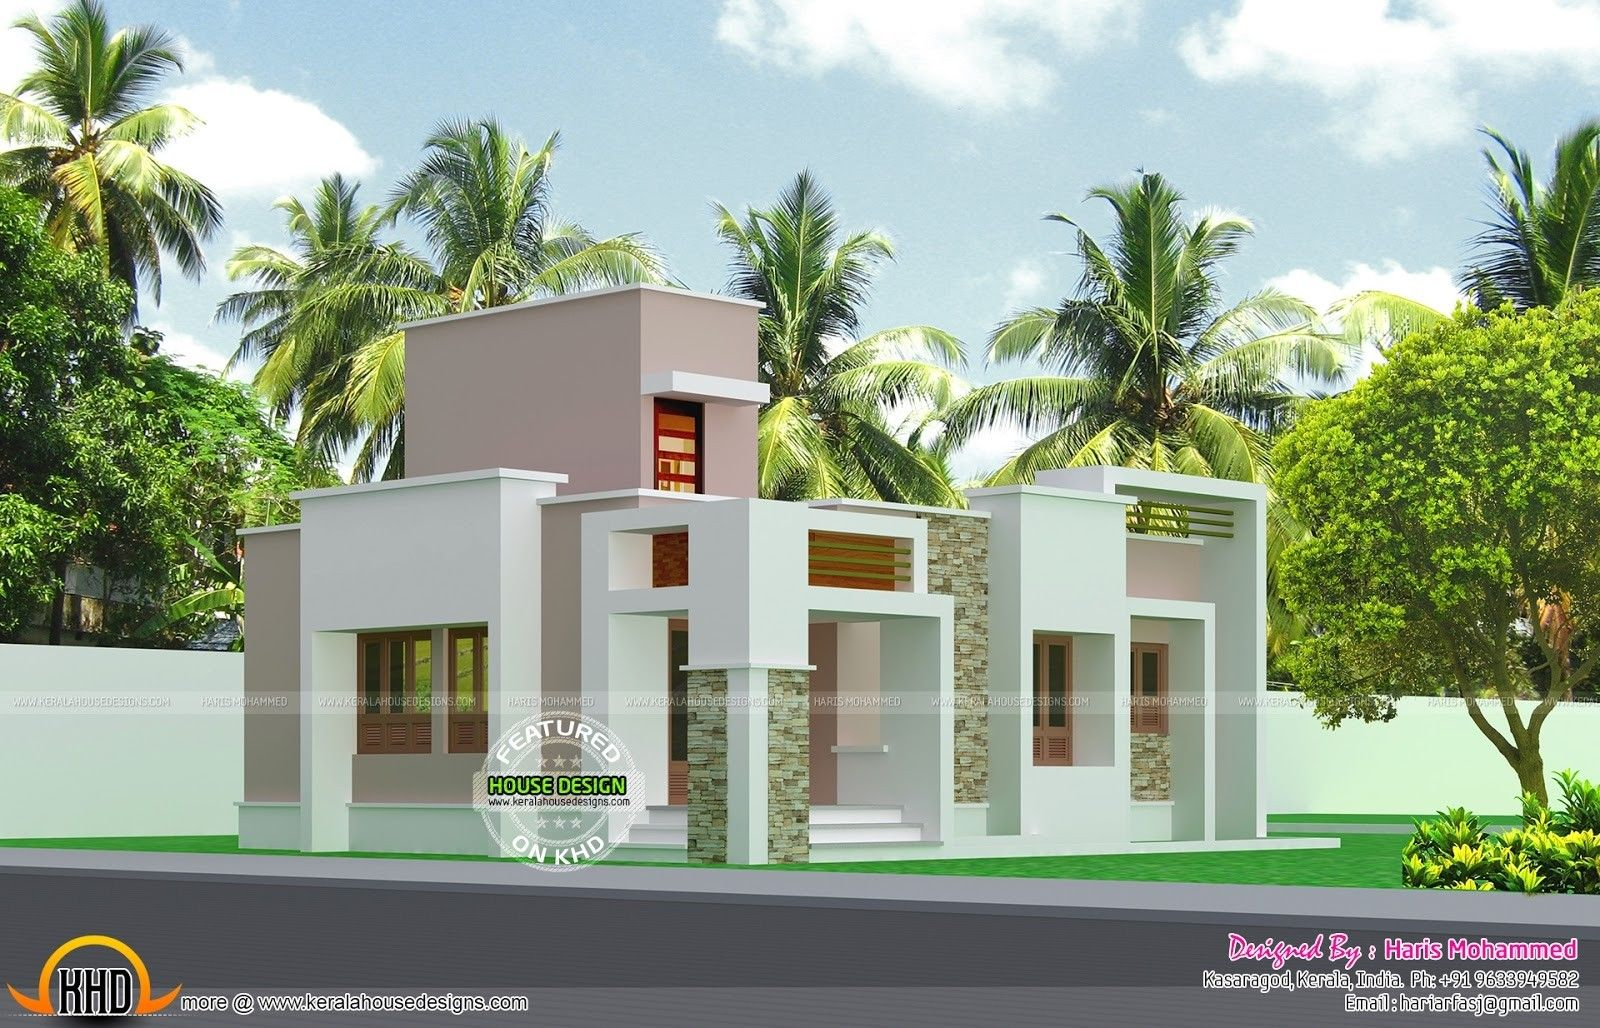 Image result for low cost house designs with price modern plans simple also hrm nenamal hnenamal on pinterest rh